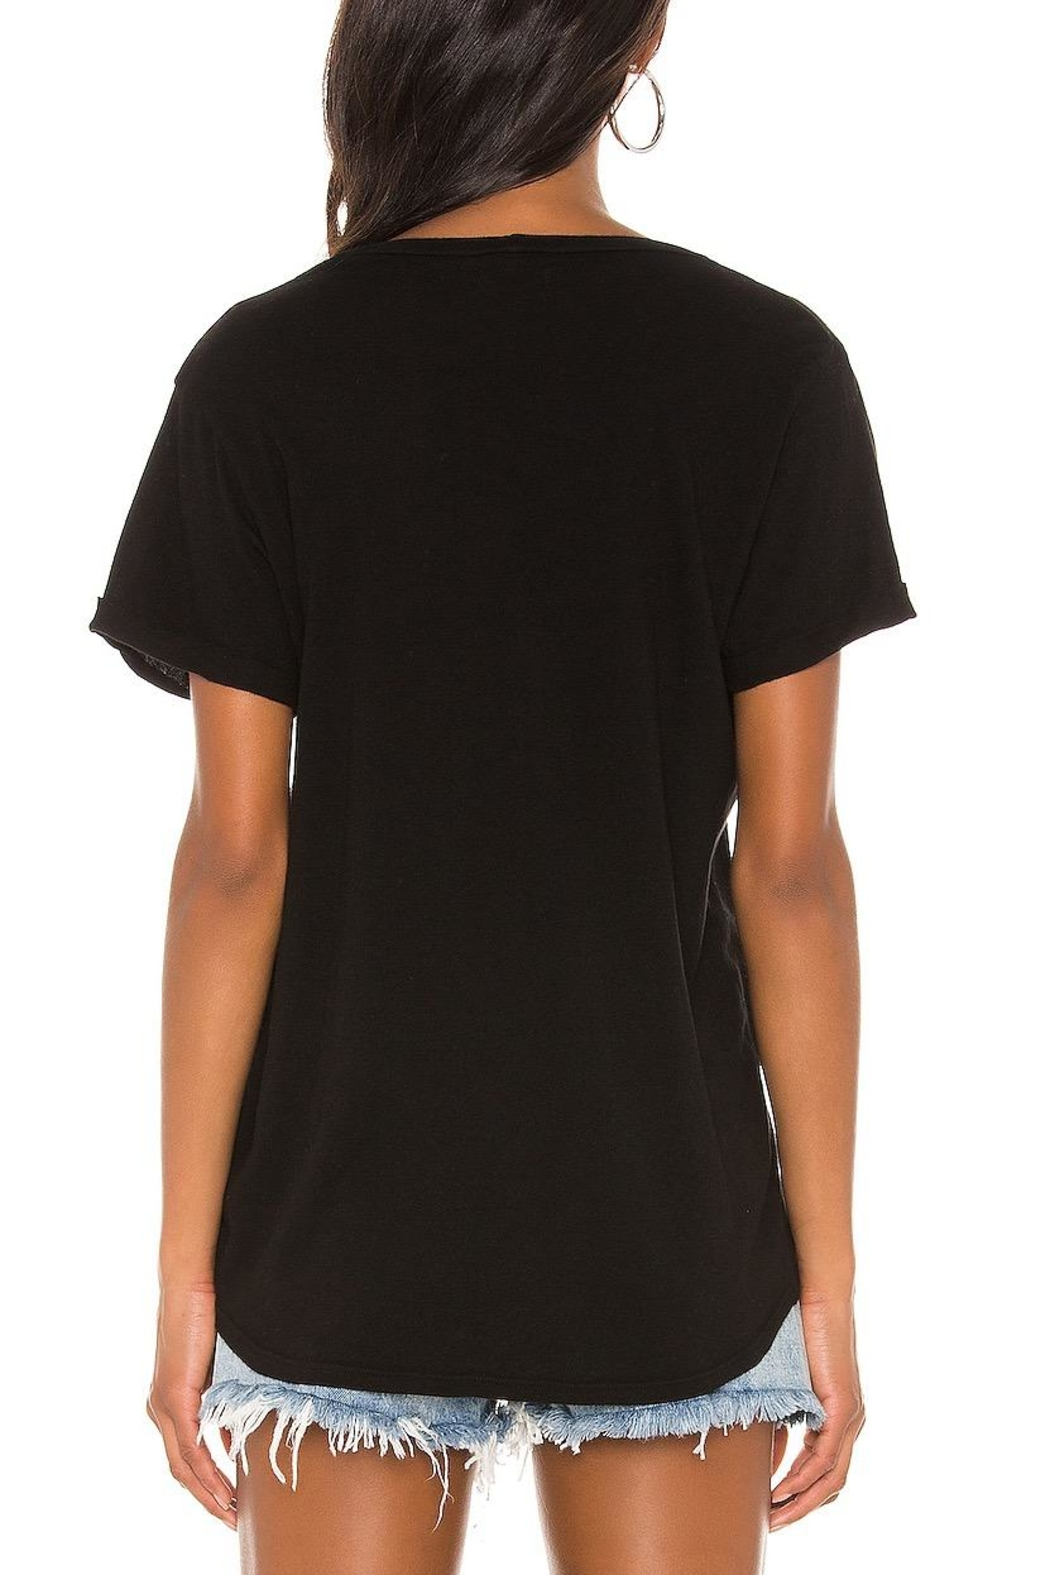 Michael Lauren Berkley Cut-Out Tee - Side Cropped Image